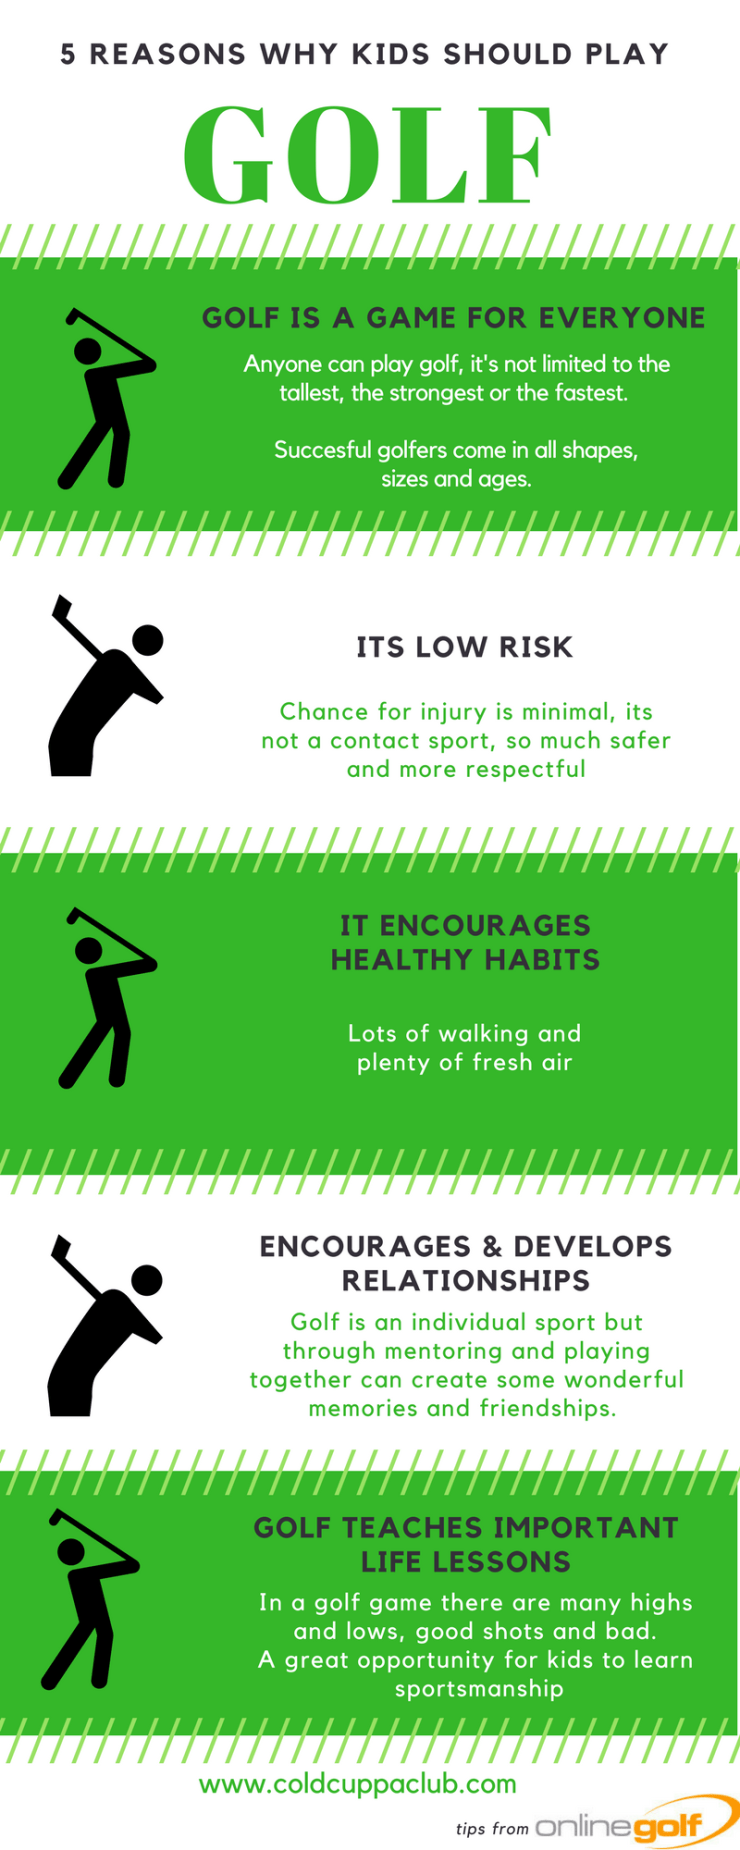 5 reasons your kids should play golf